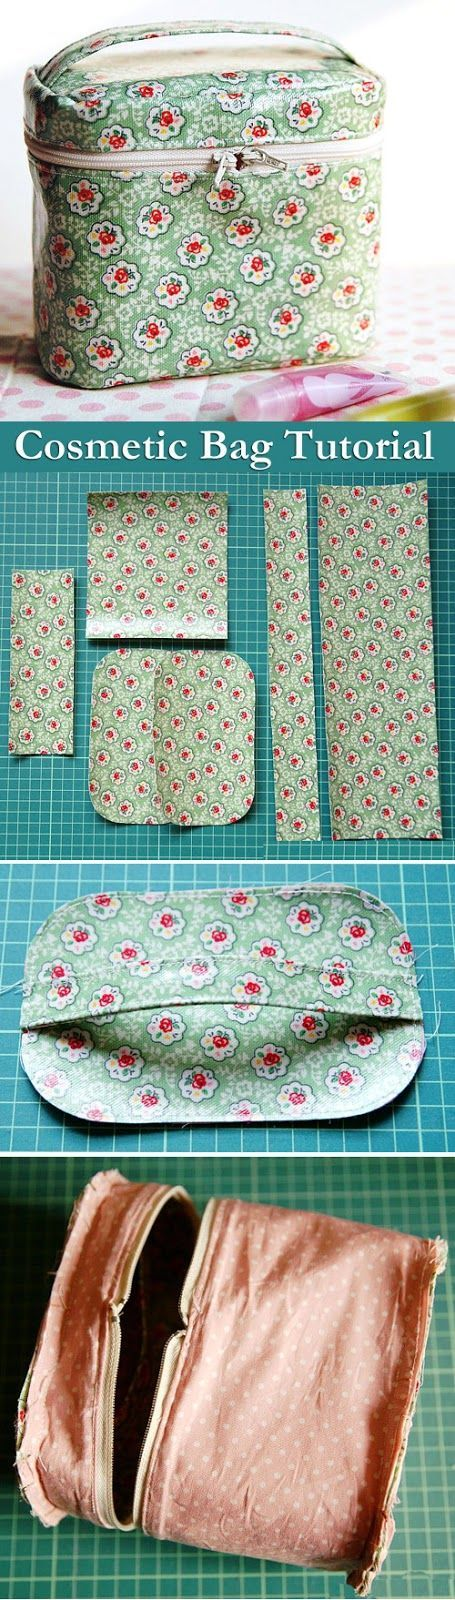 Sew a zippered cosmetic bag. Pattern. DIY tutorial in pictures…